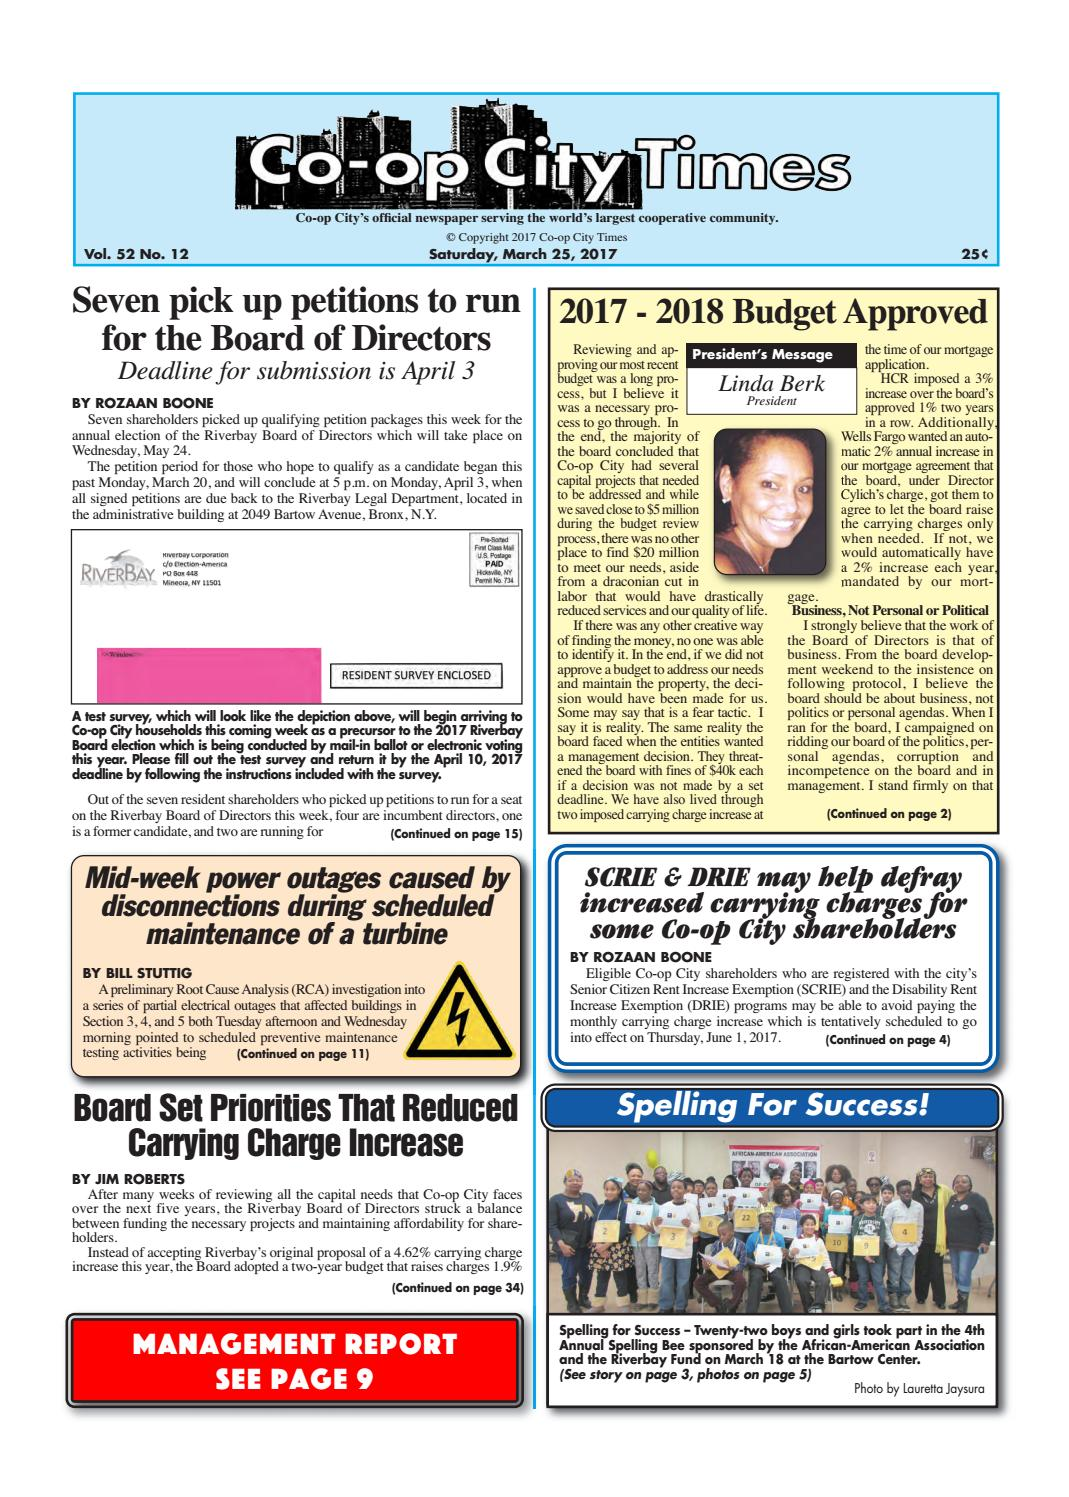 Co-op City Times 03/25/17 by Co-op City Times - issuu